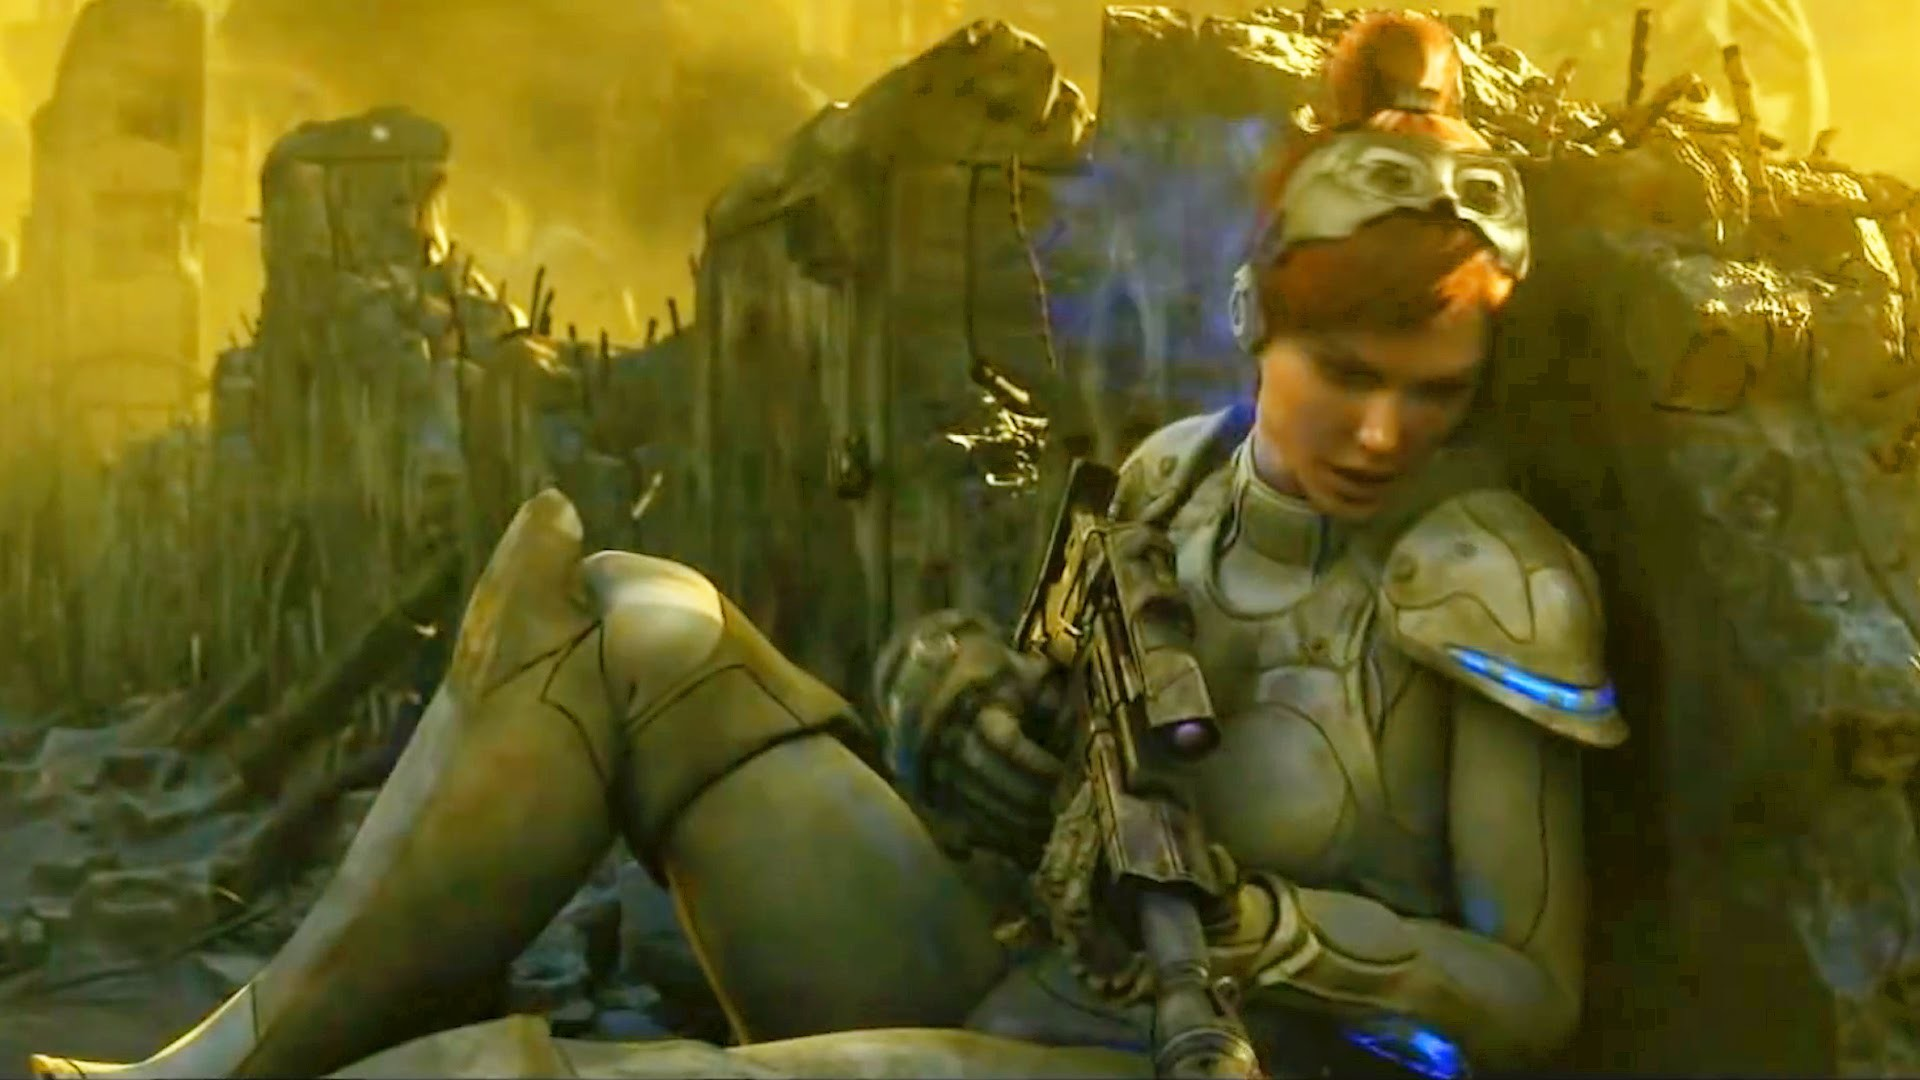 Res: 1920x1080, Sarah Kerrigan is Betrayed. Cinematic. Starcraft 2: Wing of Liberty.  Trailer (Reformatted 16:9) - YouTube